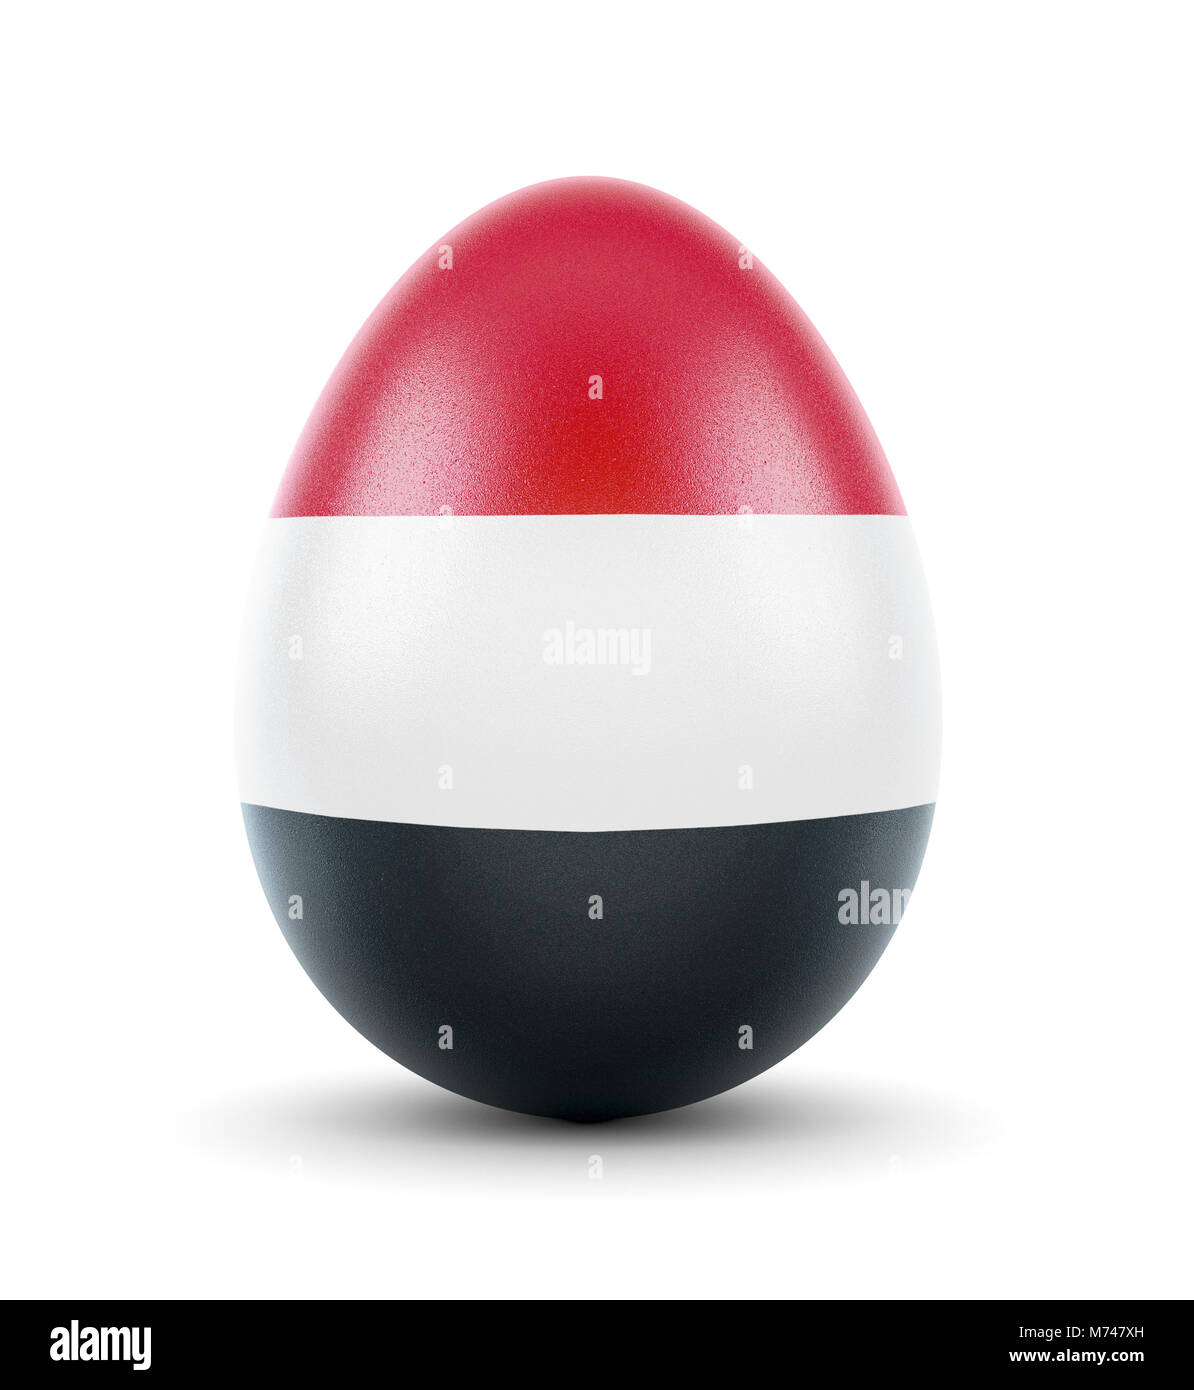 High quality realistic rendering of an glossy egg with the flag of Yemen.(series) - Stock Image